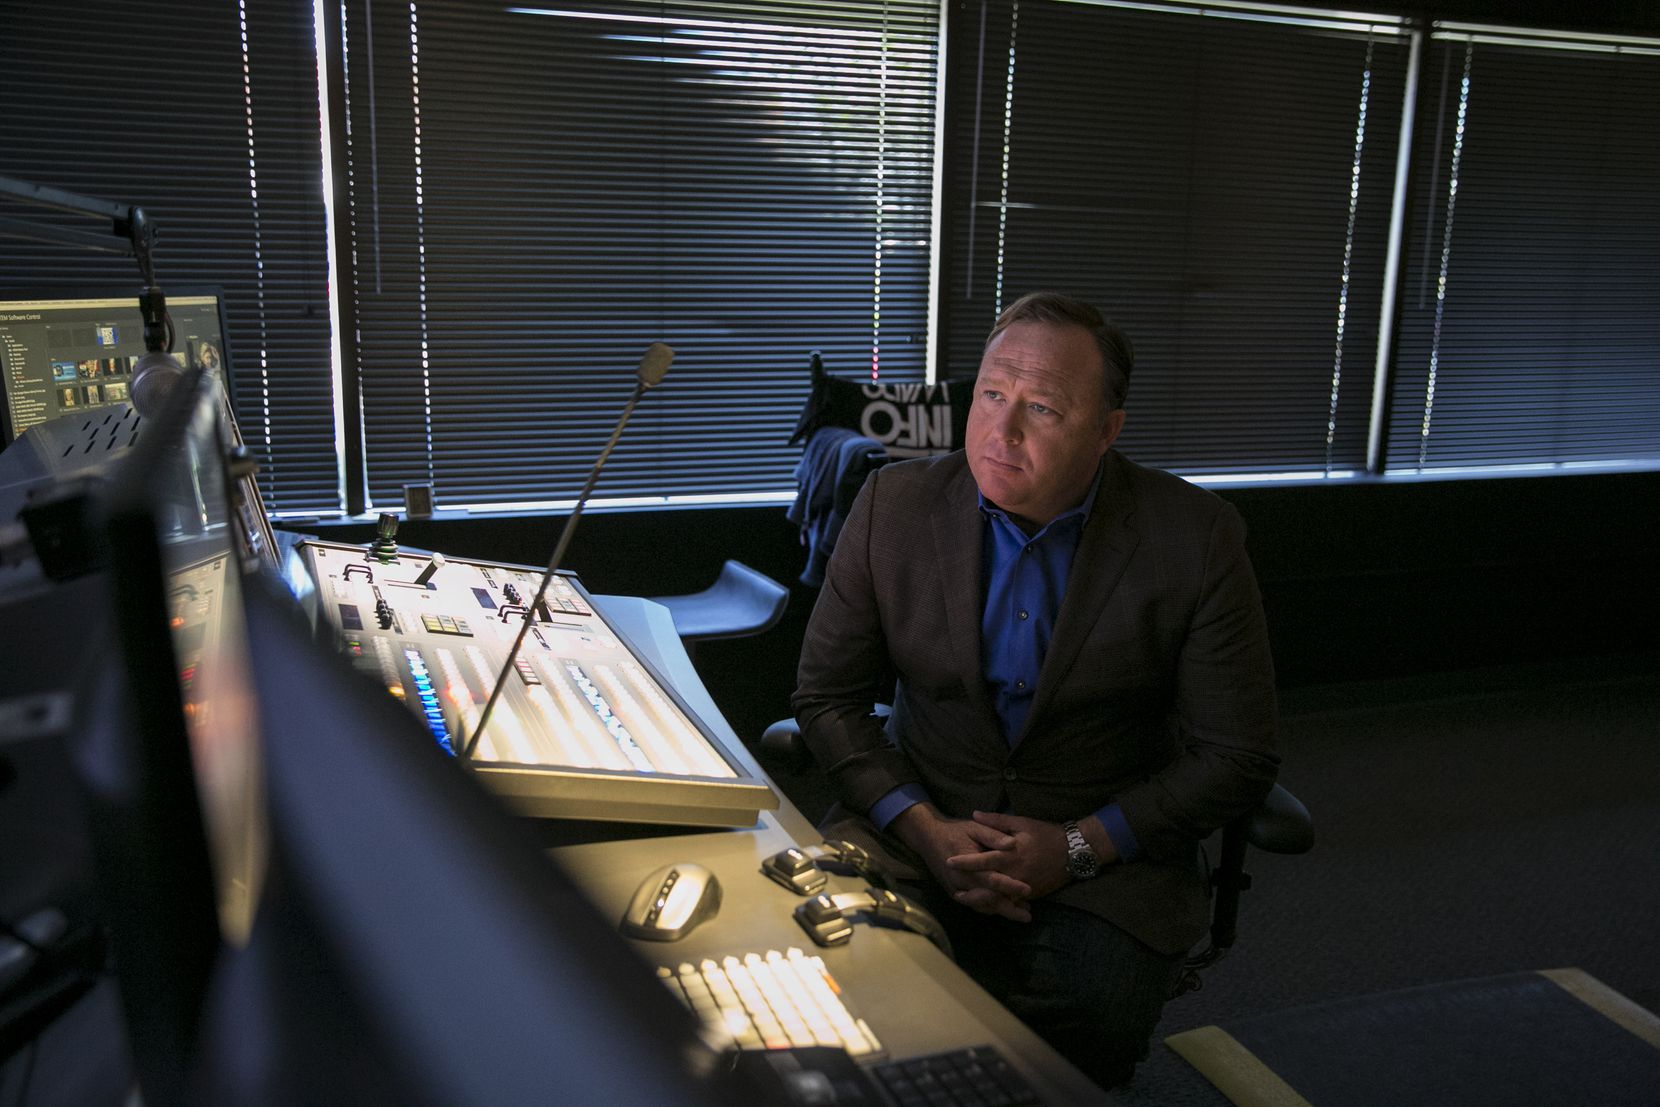 Alex Jones, conservative conspiracy theorist and operator of Infowars.com, in the control room for his right-wing radio show, in Austin. (Ilana Panich-Linsman/The New York Times)